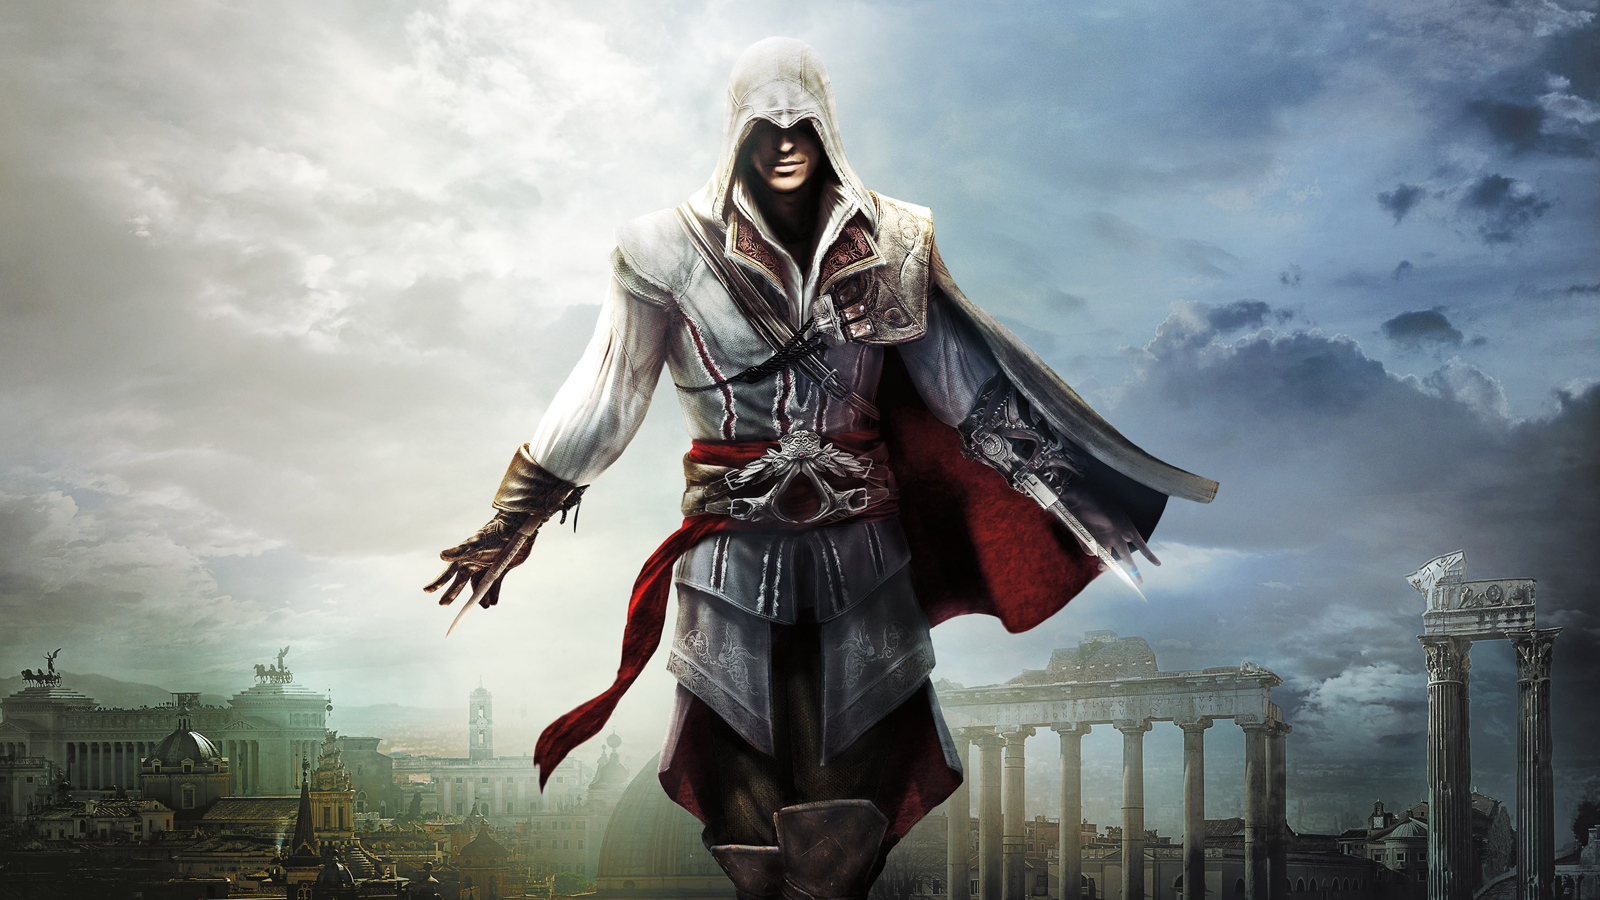 Assassin's Creed Anime Series Coming to Netflix